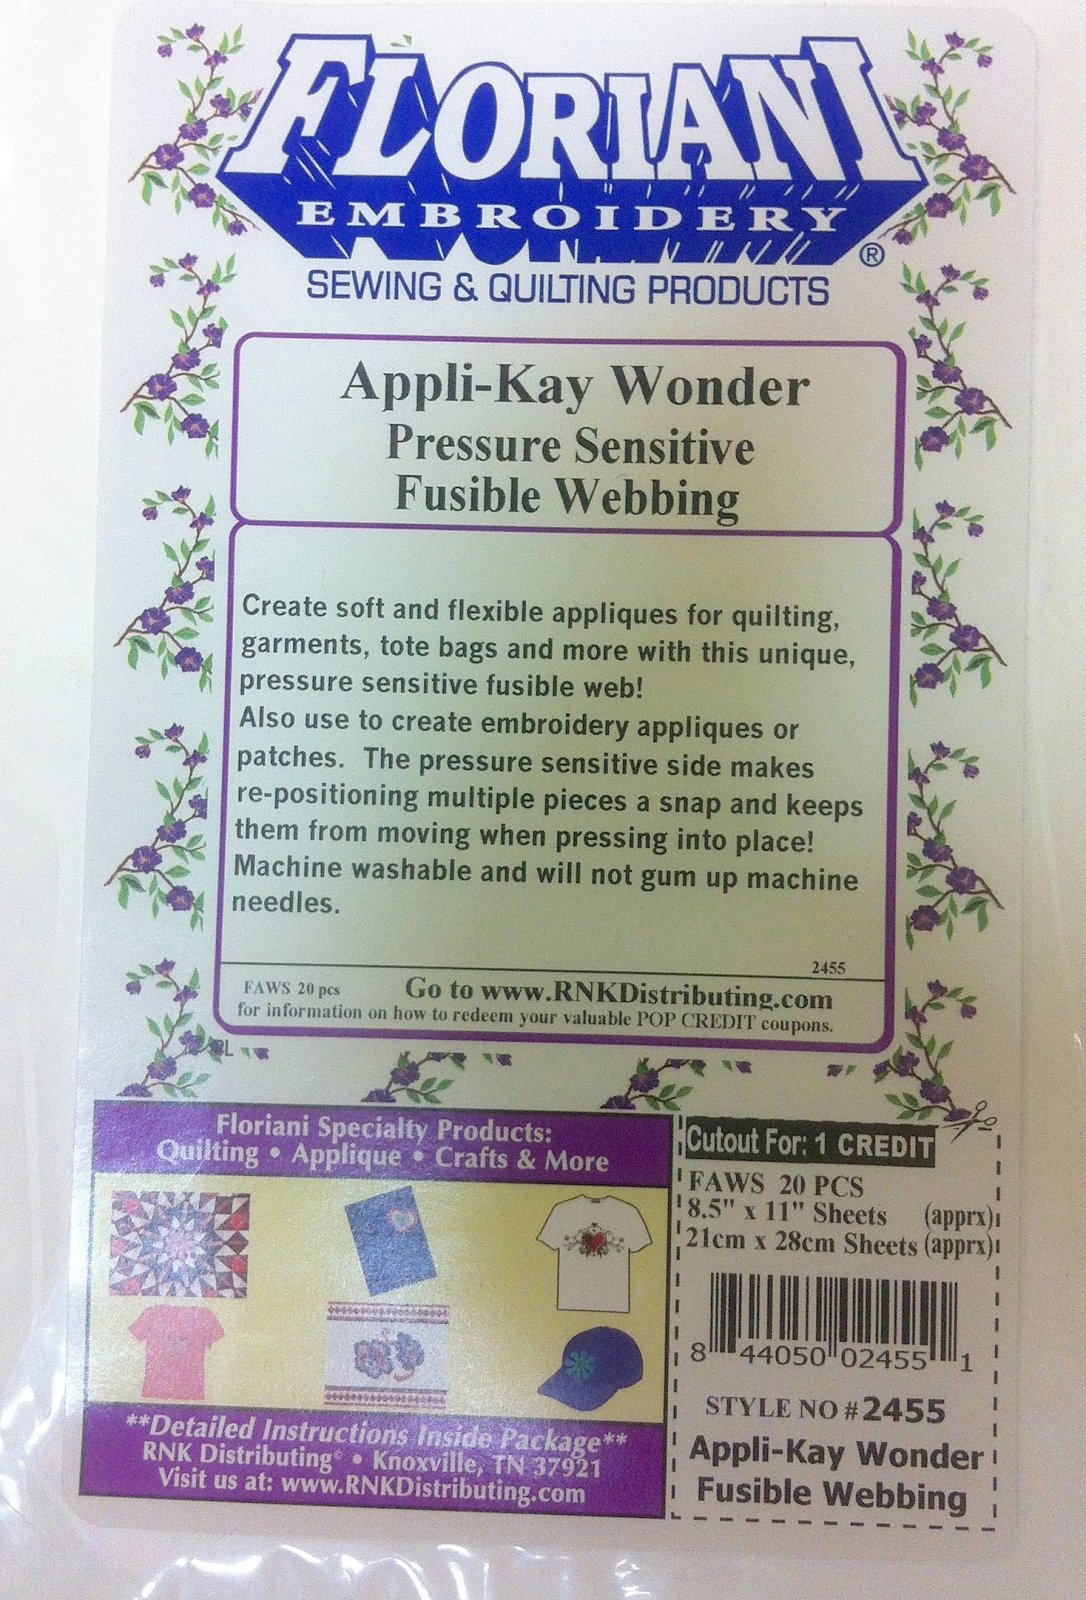 Appli-Kay Wonder 8.5 X 11 Sheets 20 ct